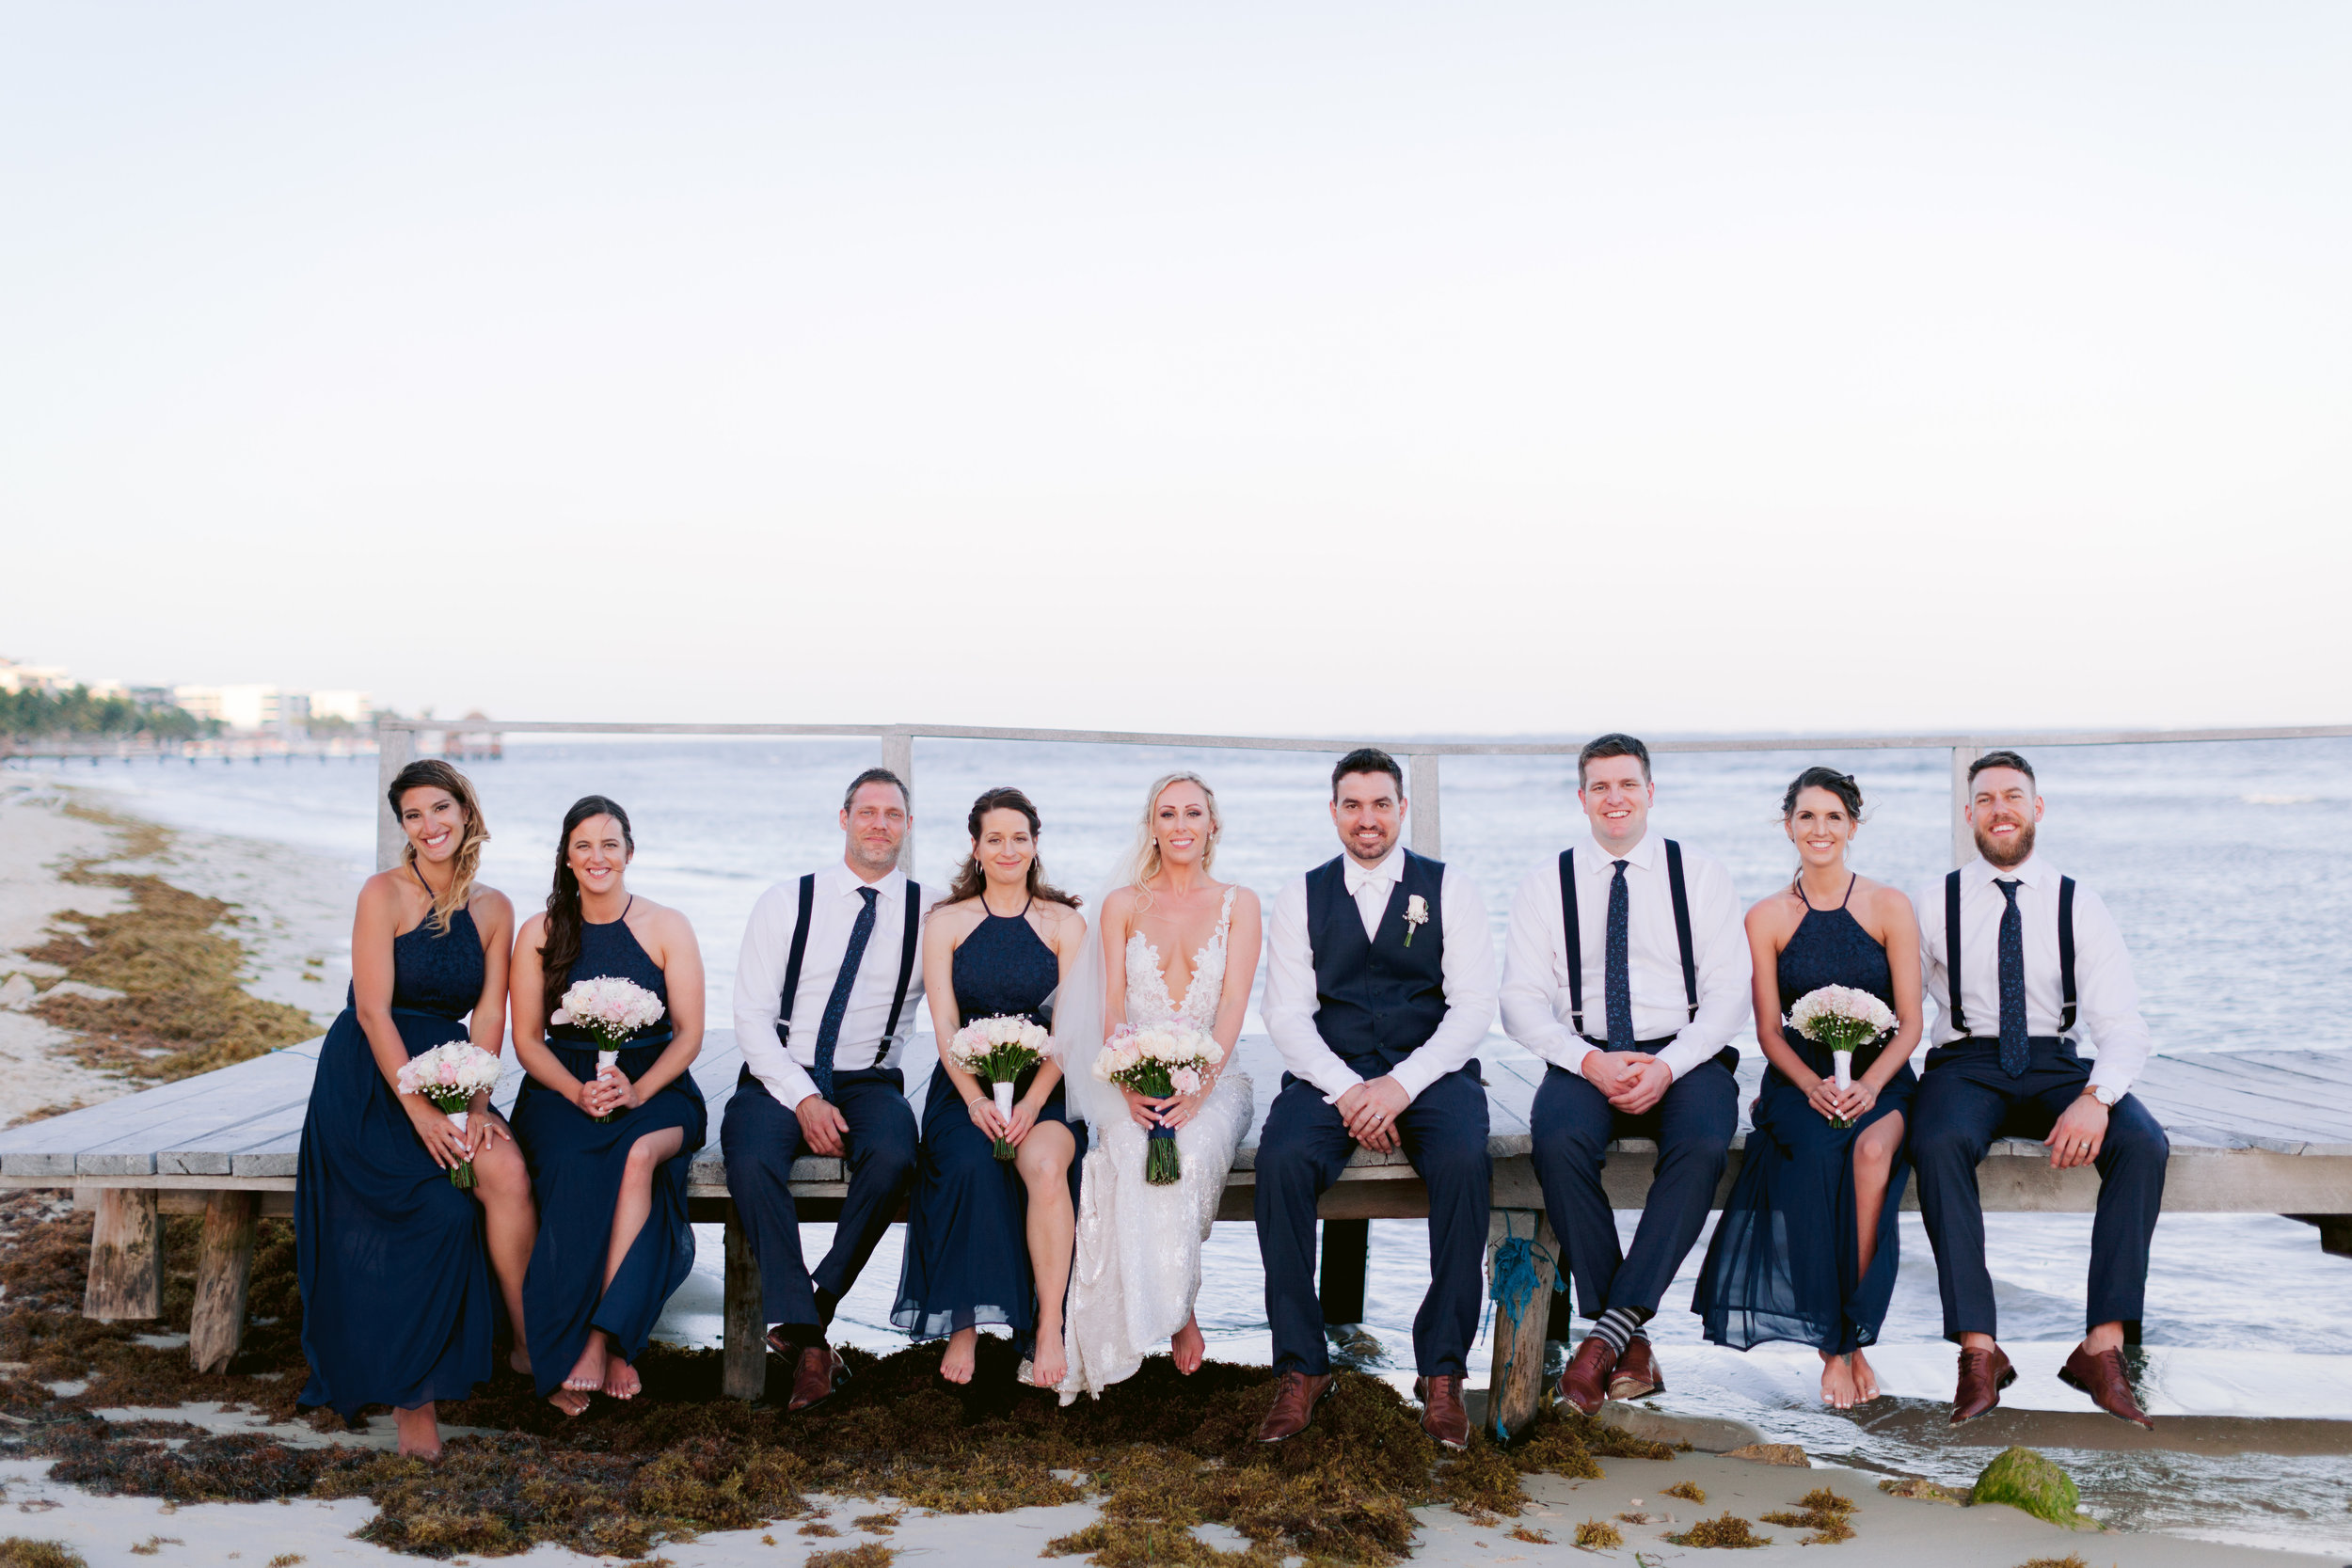 Kim_Jeff_Cancun Wedding_Portraits_Kurtz_Orpia (133 of 178).jpg